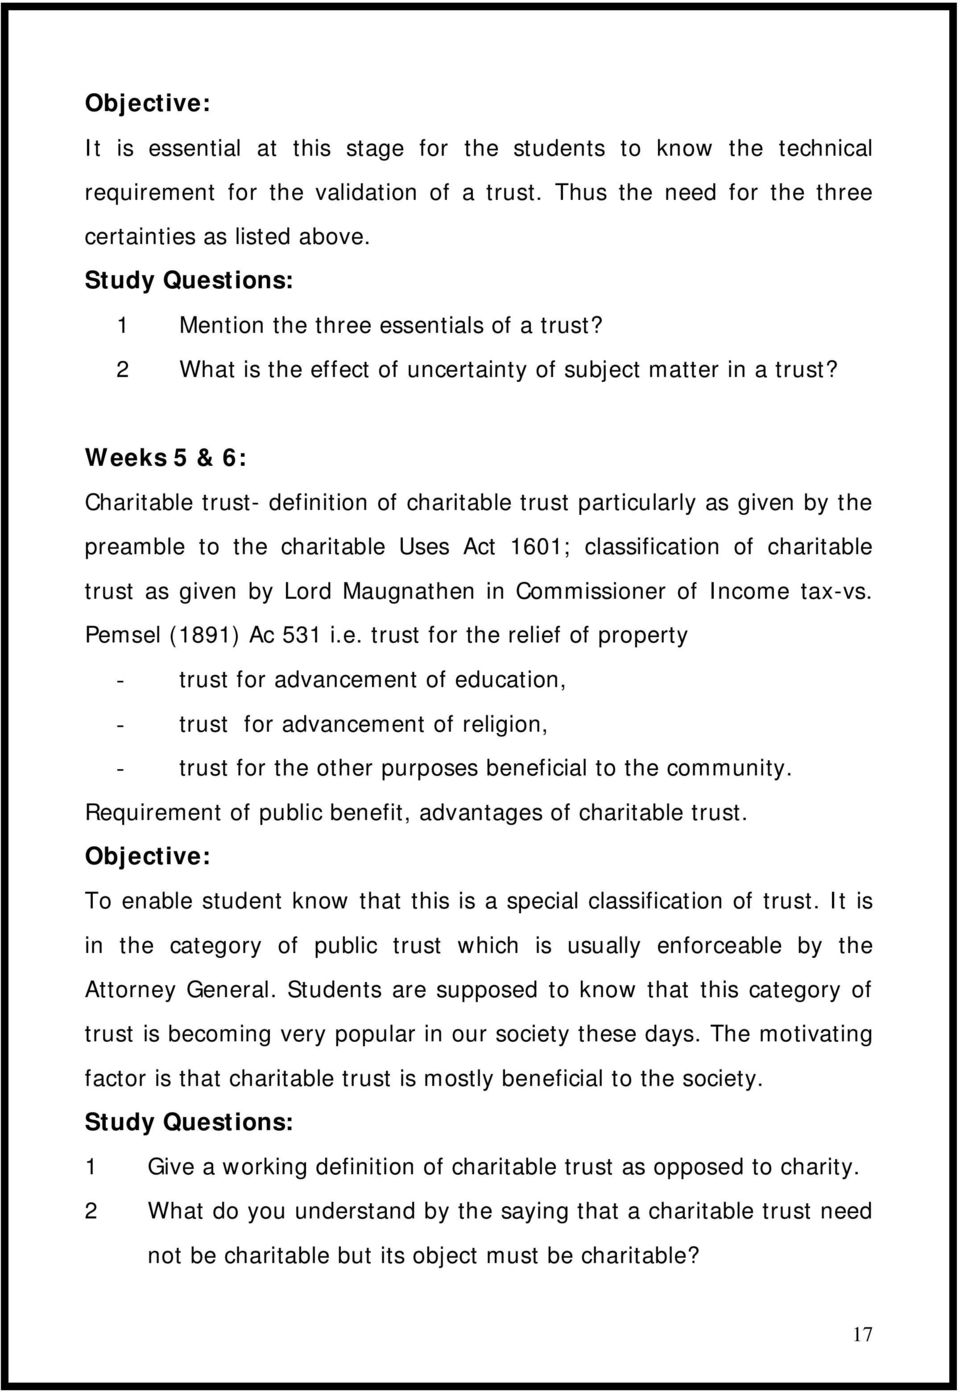 Weeks 5 & 6: Charitable trust- definition of charitable trust particularly as given by the preamble to the charitable Uses Act 1601; classification of charitable trust as given by Lord Maugnathen in